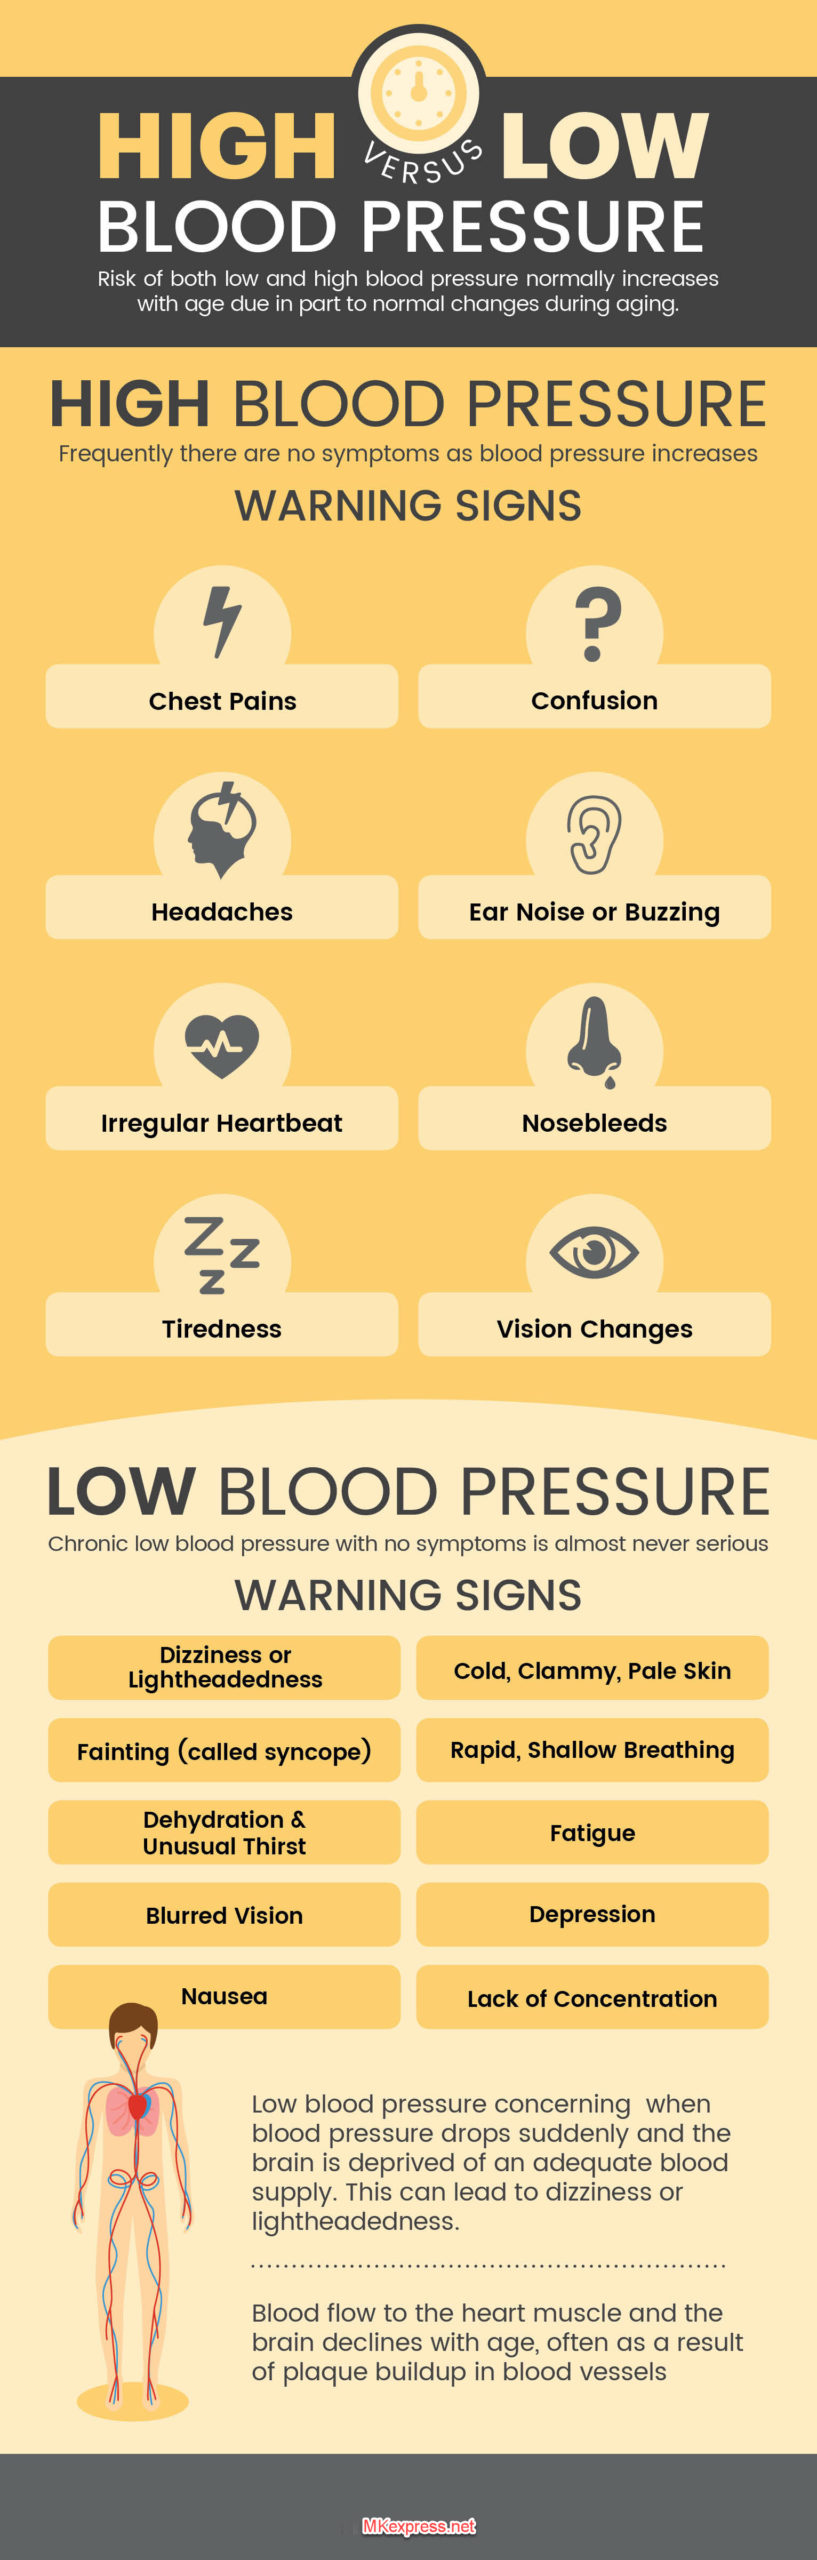 High blood pressure vs. low blood pressure - MKexpress.net